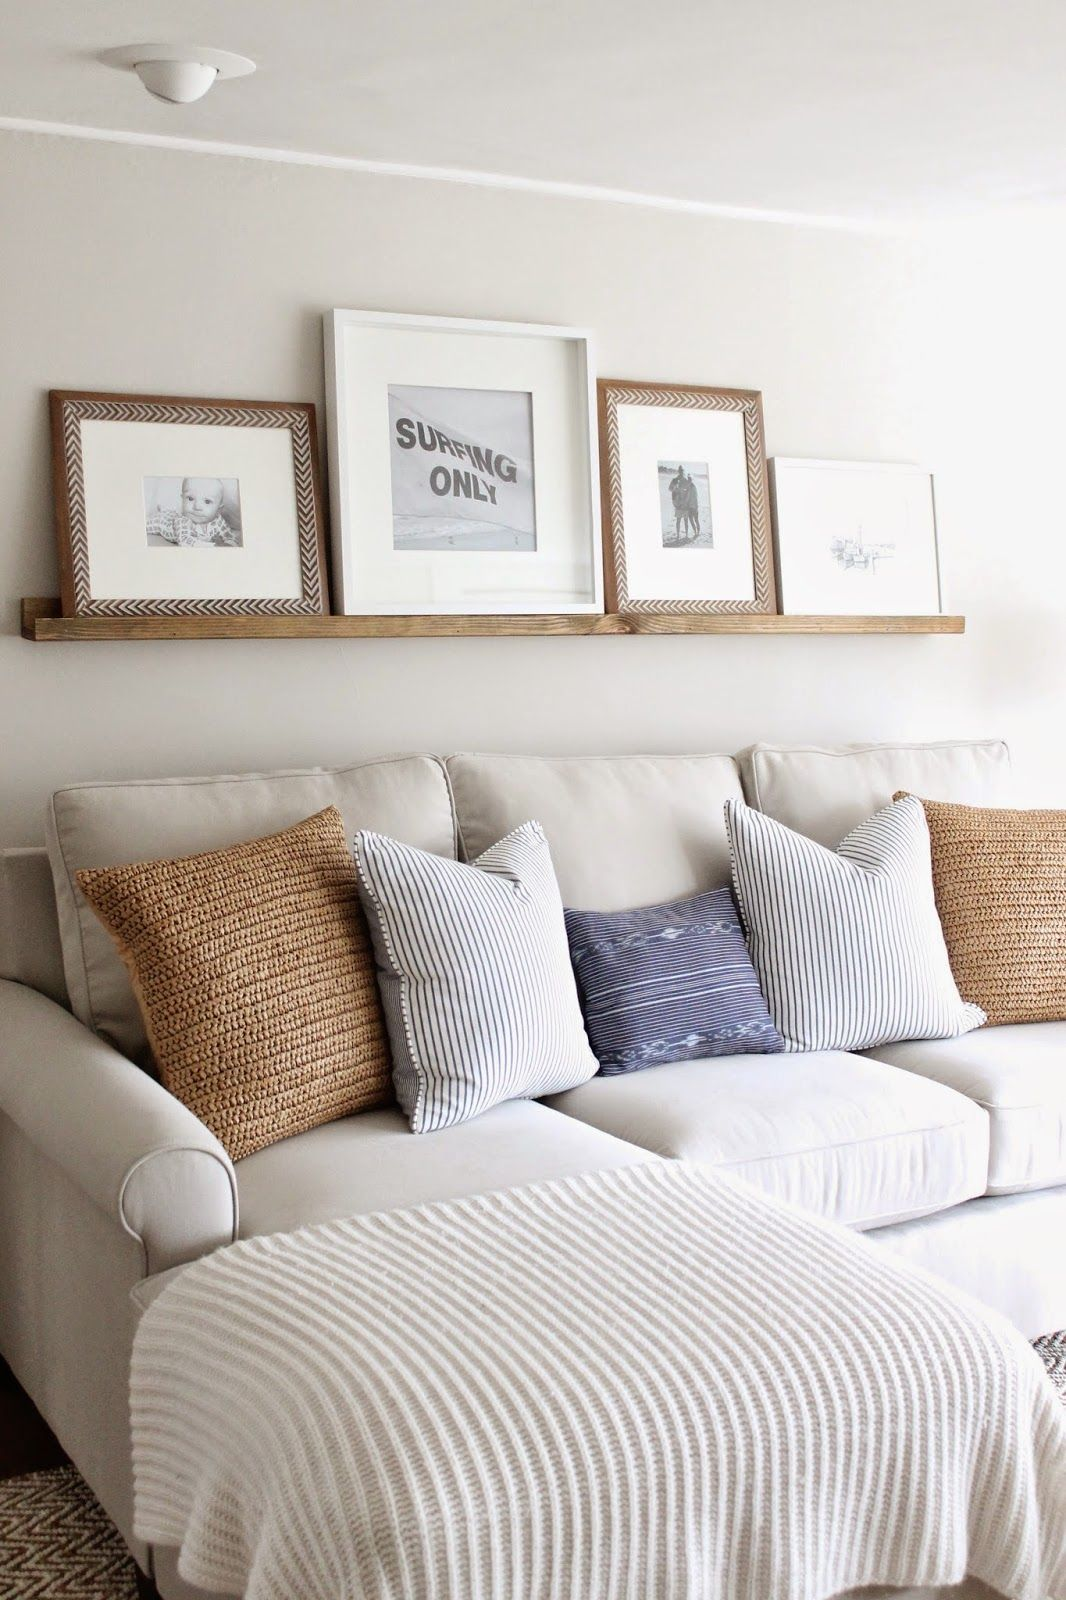 The Picket Fence Projects Family Room Follow Up Our DIY Picture Ledge Above Couch